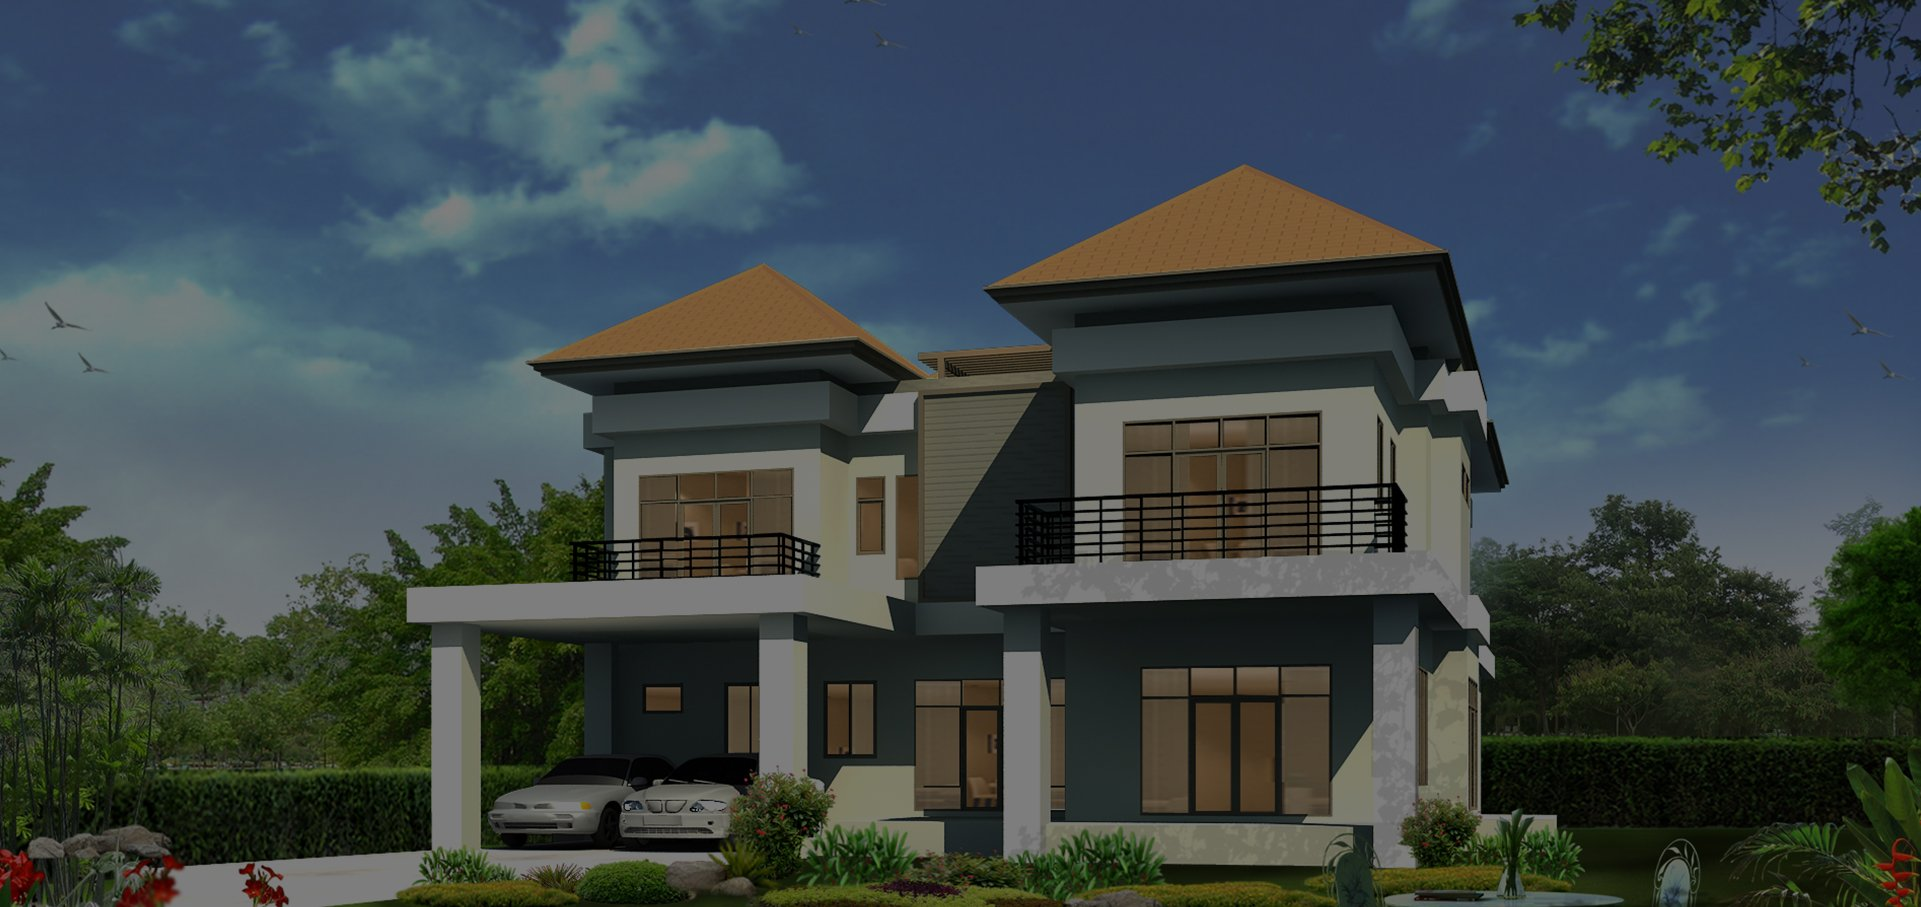 Hotel Apartments, Villas Near Airport, Luxurious Villas For Sale